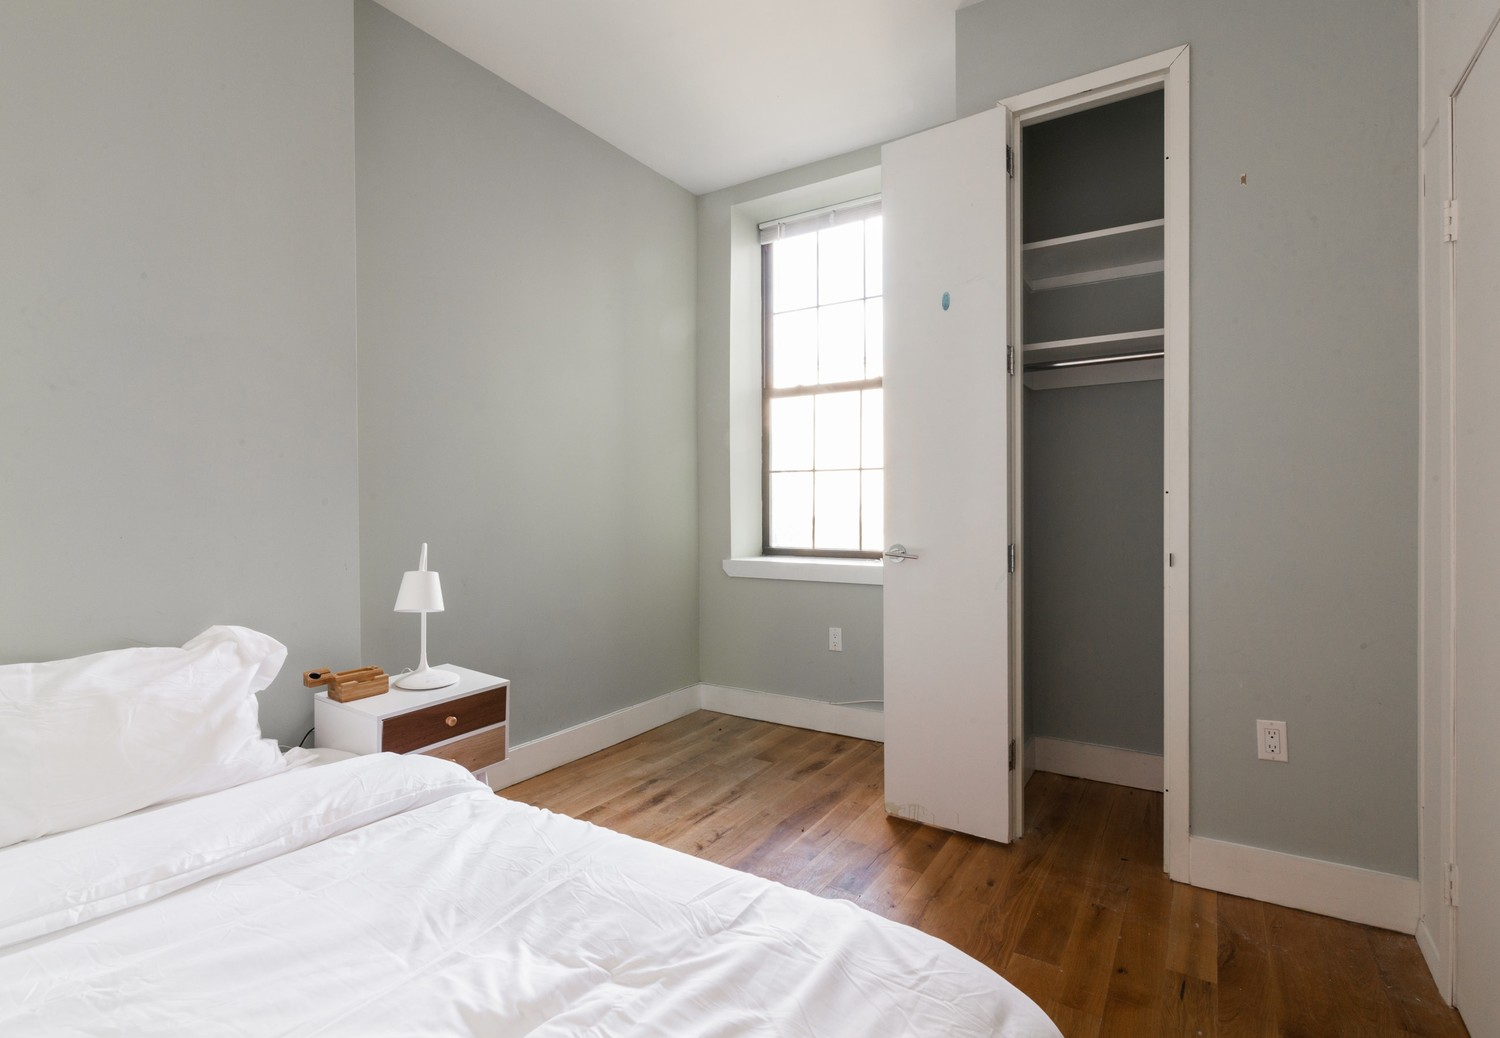 Private Room in Furnished 4 Bed / 1 Bath Apt. with Utilities, WiFi, and Laundry in Building